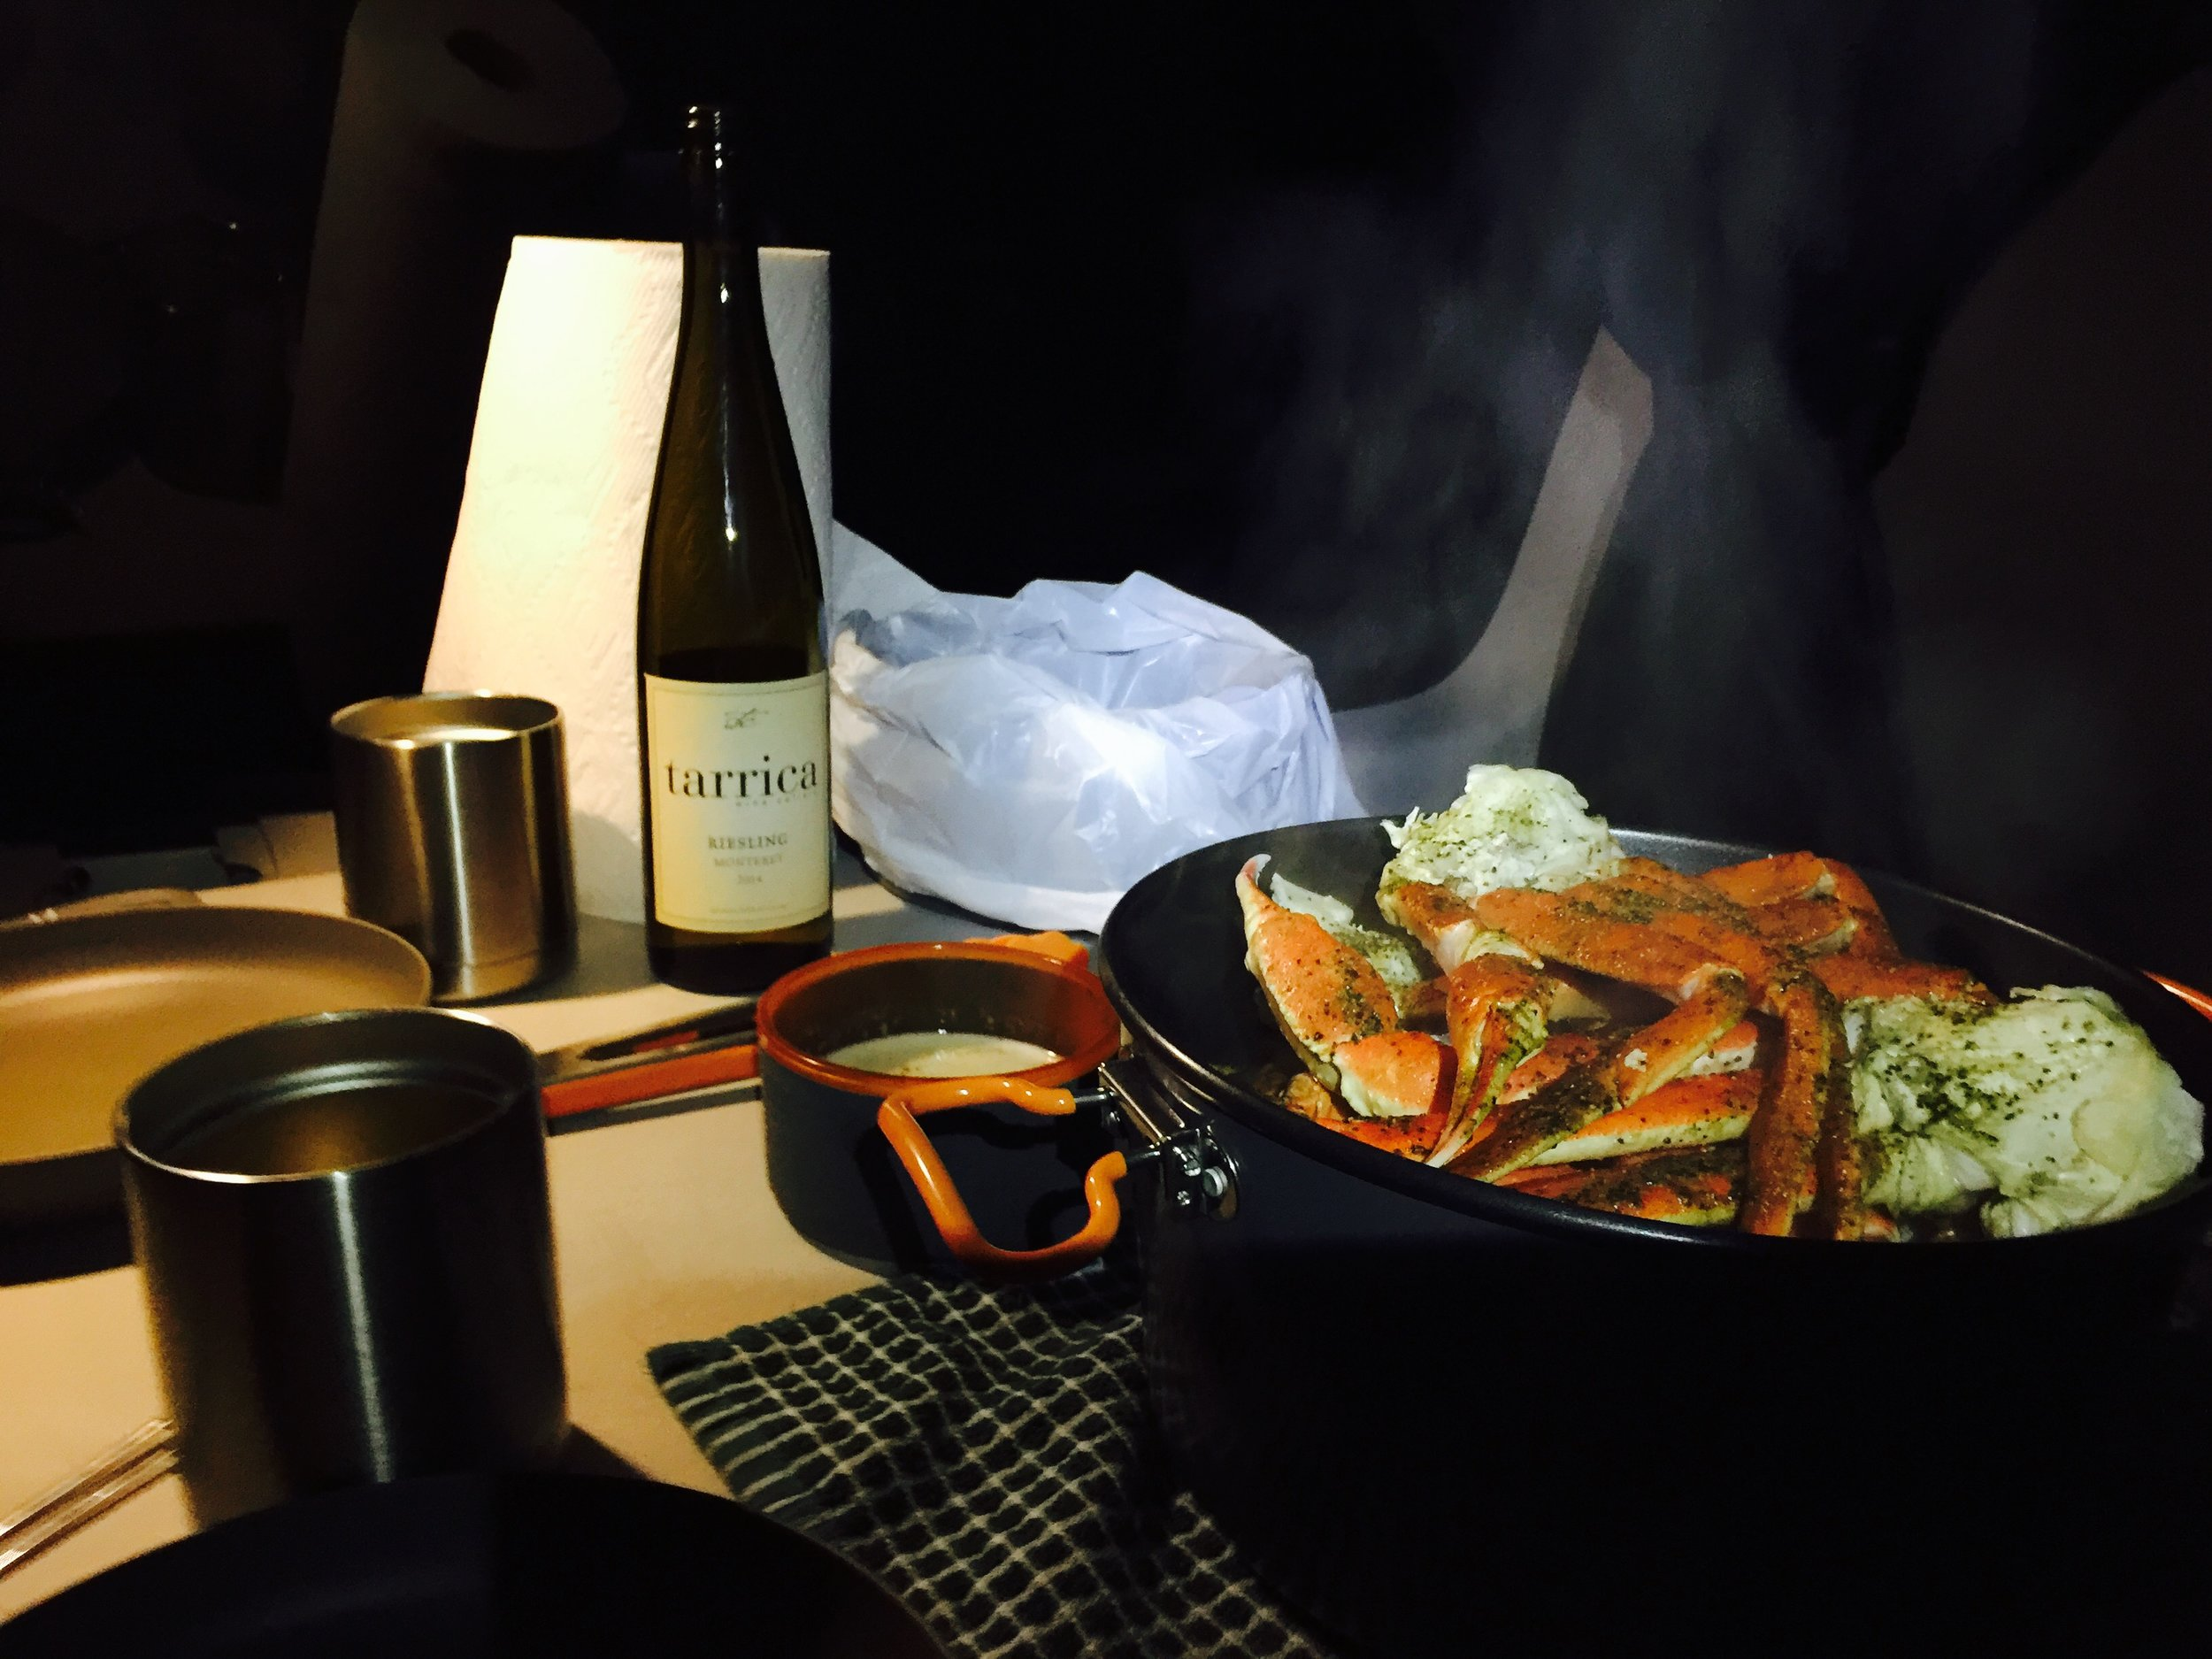 Your imagination is the limit when it comes to van dinners. I steamed a pot of crab legs and shrimp, along with drawn butter and a local California wine!